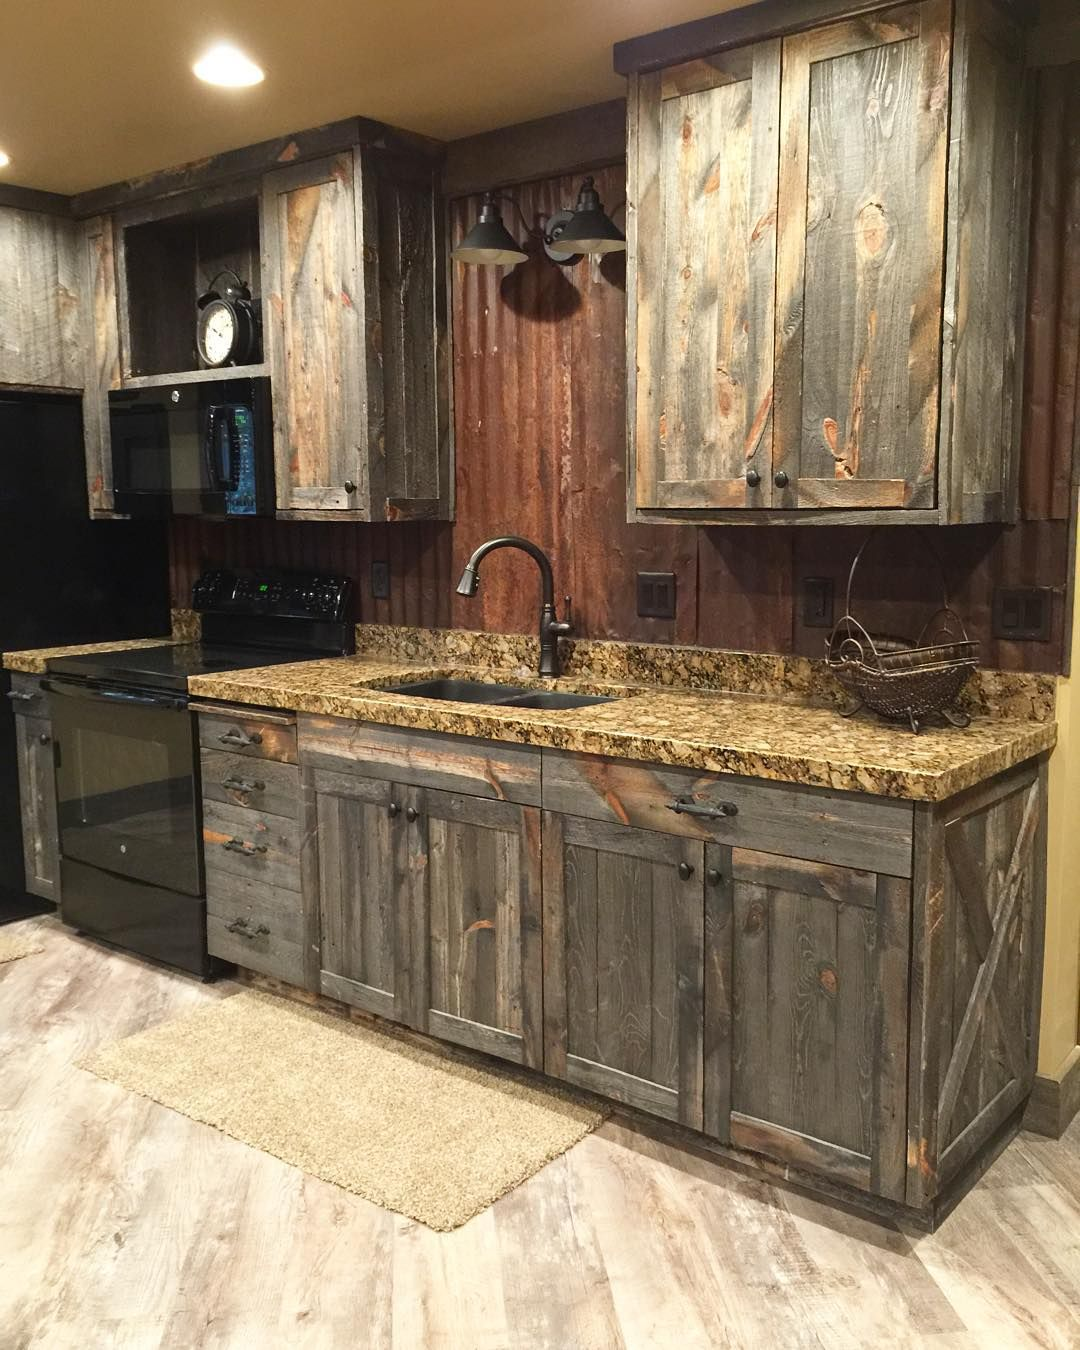 Best Kitchen Gallery: 15 Rustic Kitchen Cabi S Designs Ideas With Photo Gallery Steel of Rustic Wood Kitchen Cabinets on rachelxblog.com